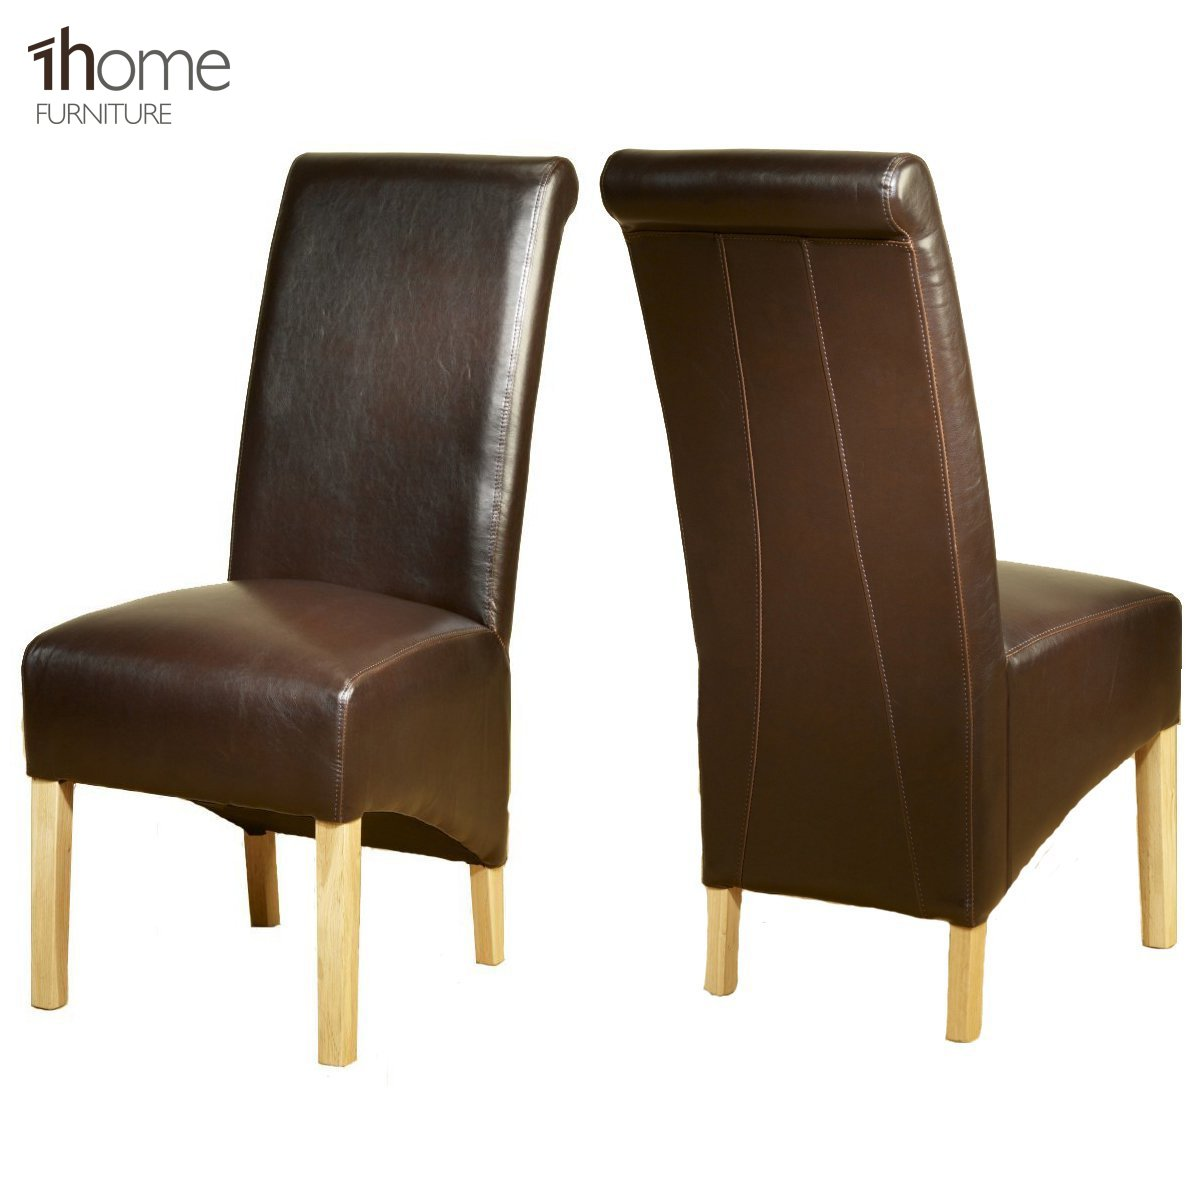 1home leather dining chairs scroll high top back oak legs furniture 1 pair brown amazoncouk kitchen u0026 home